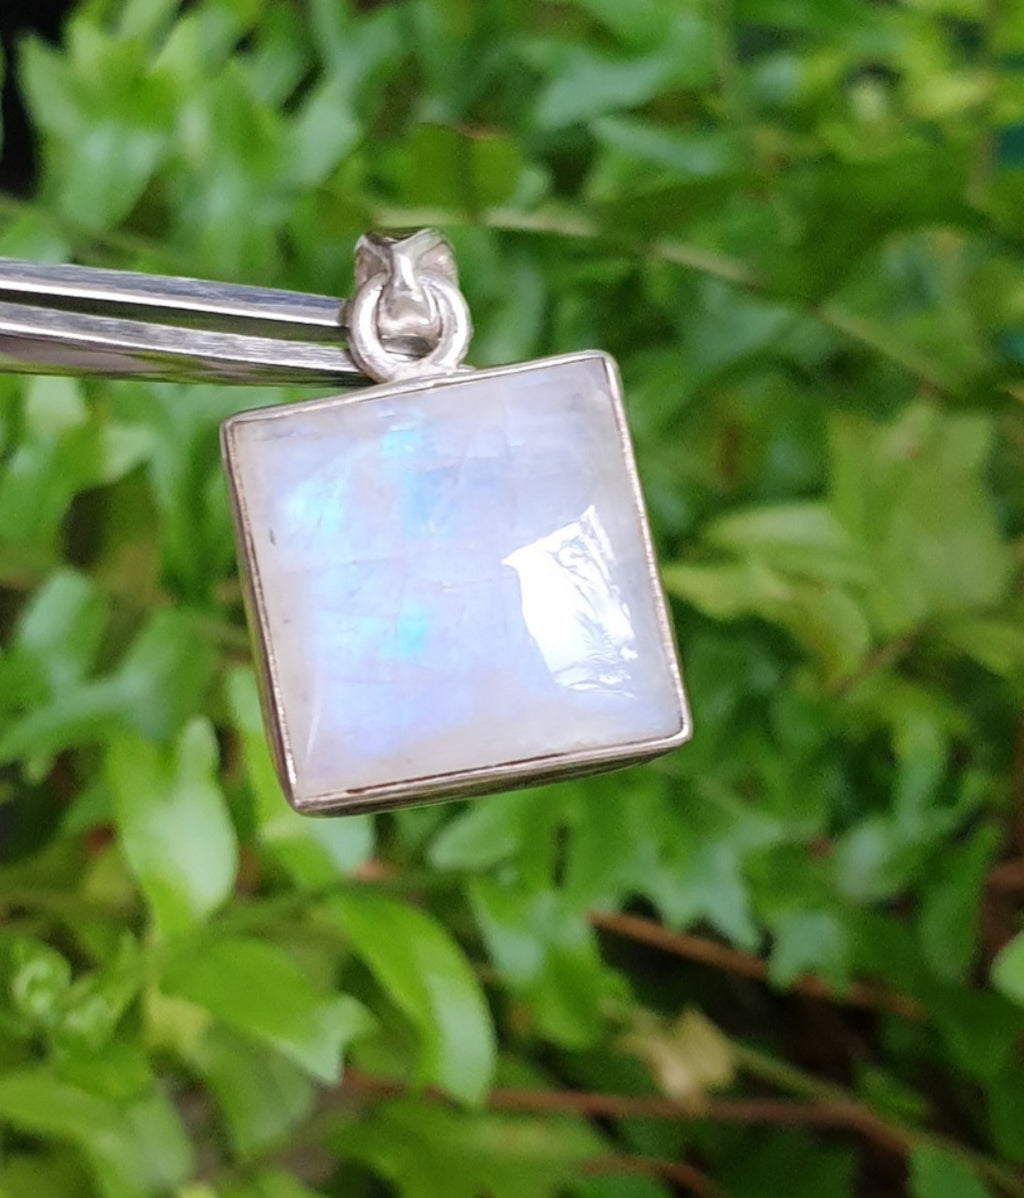 Rainbow Moonstone pendant in 925 Sterling Silver, from Como, Italy